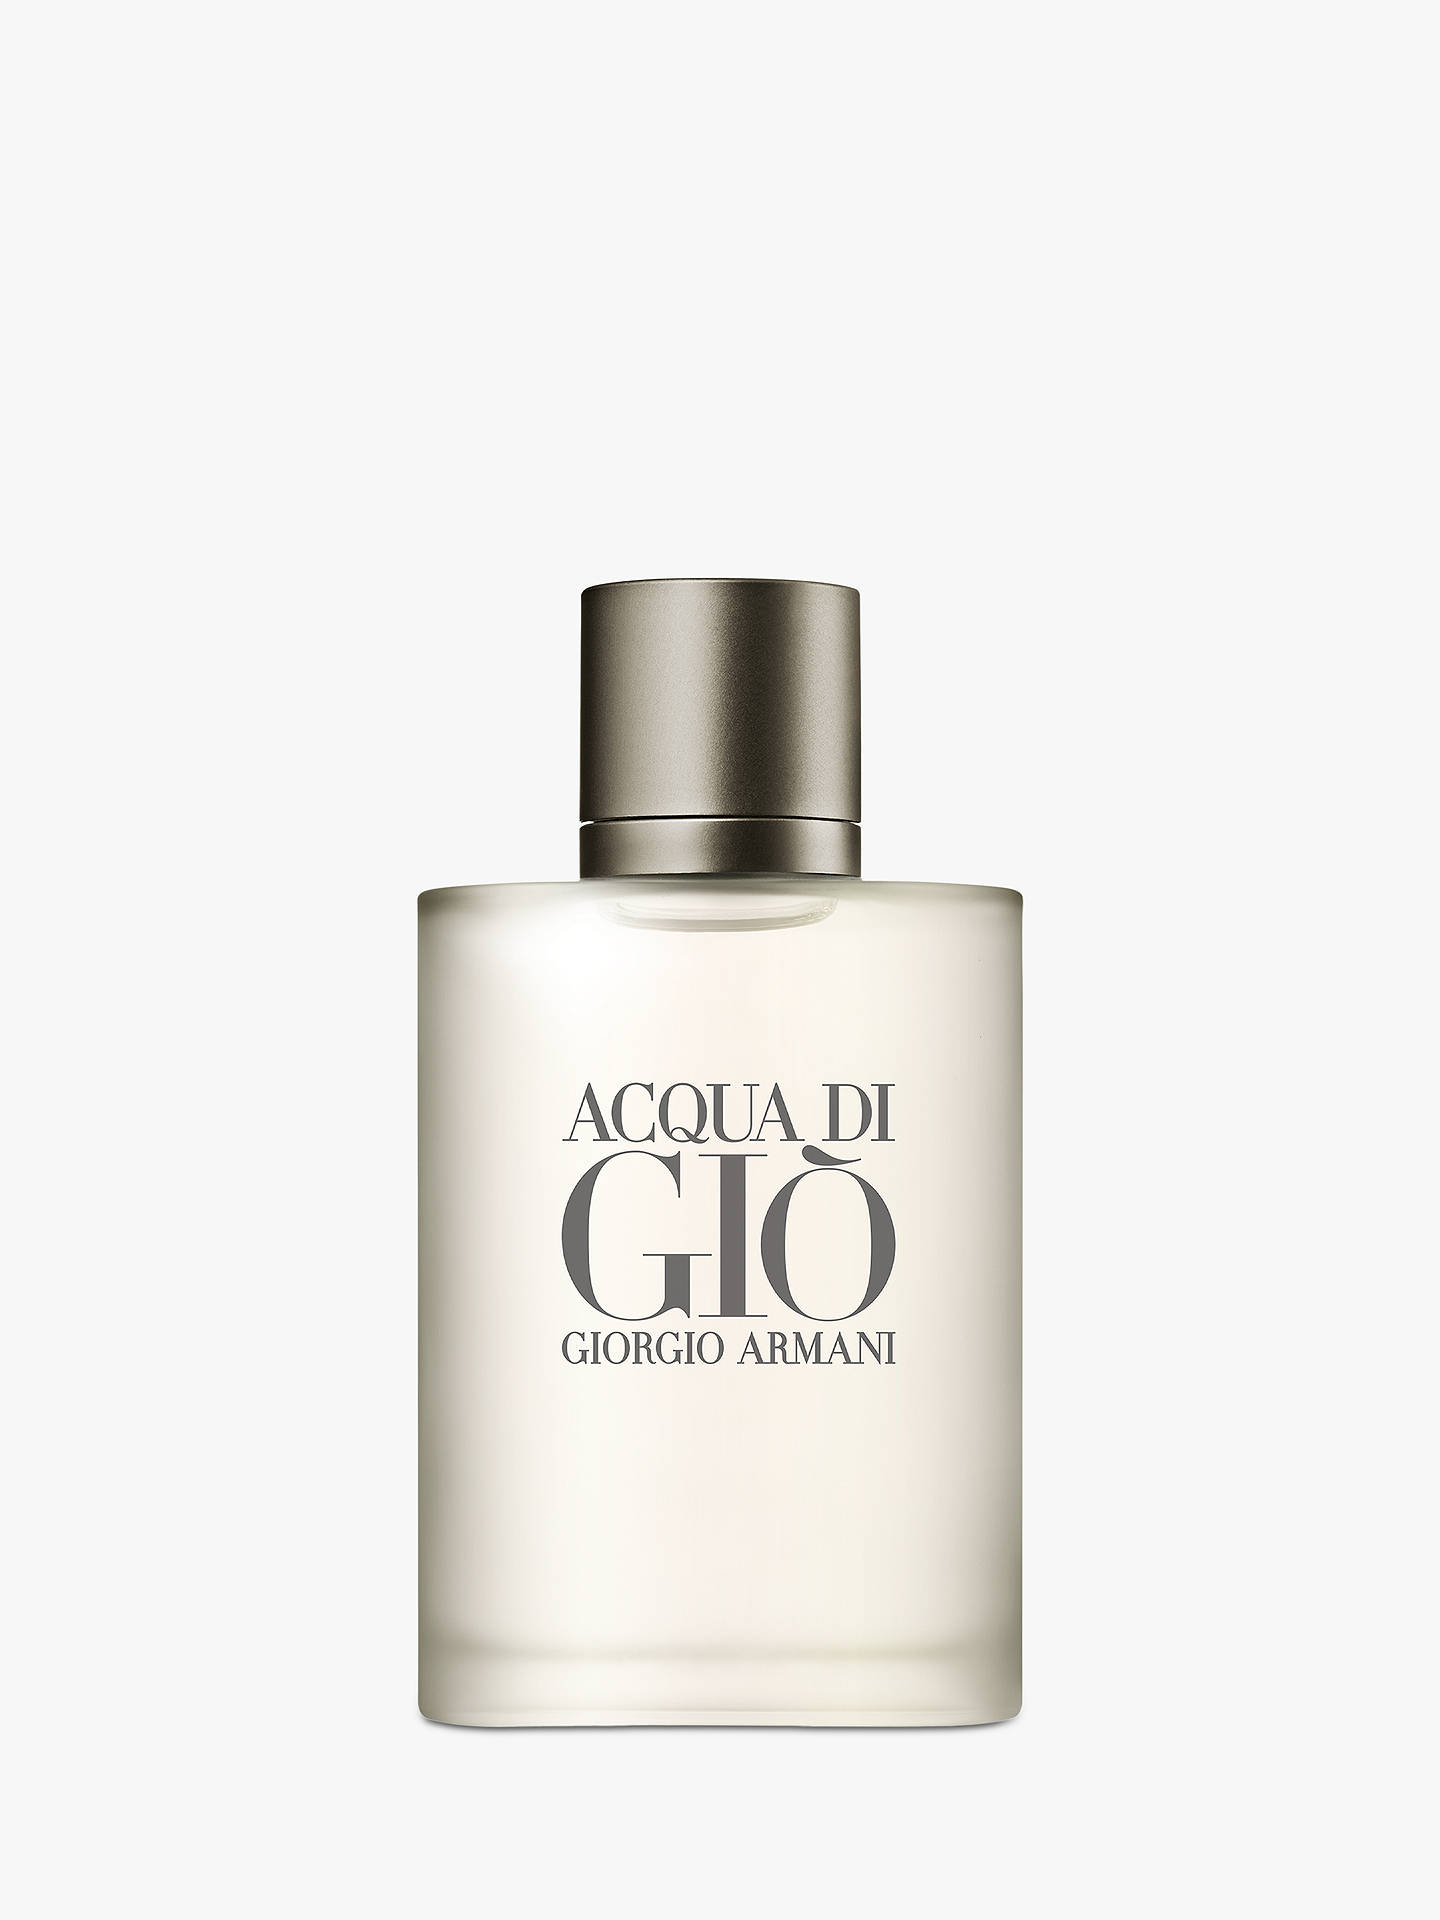 Giorgio Armani Acqua Di Giò Homme Eau De Toilette Spray At John